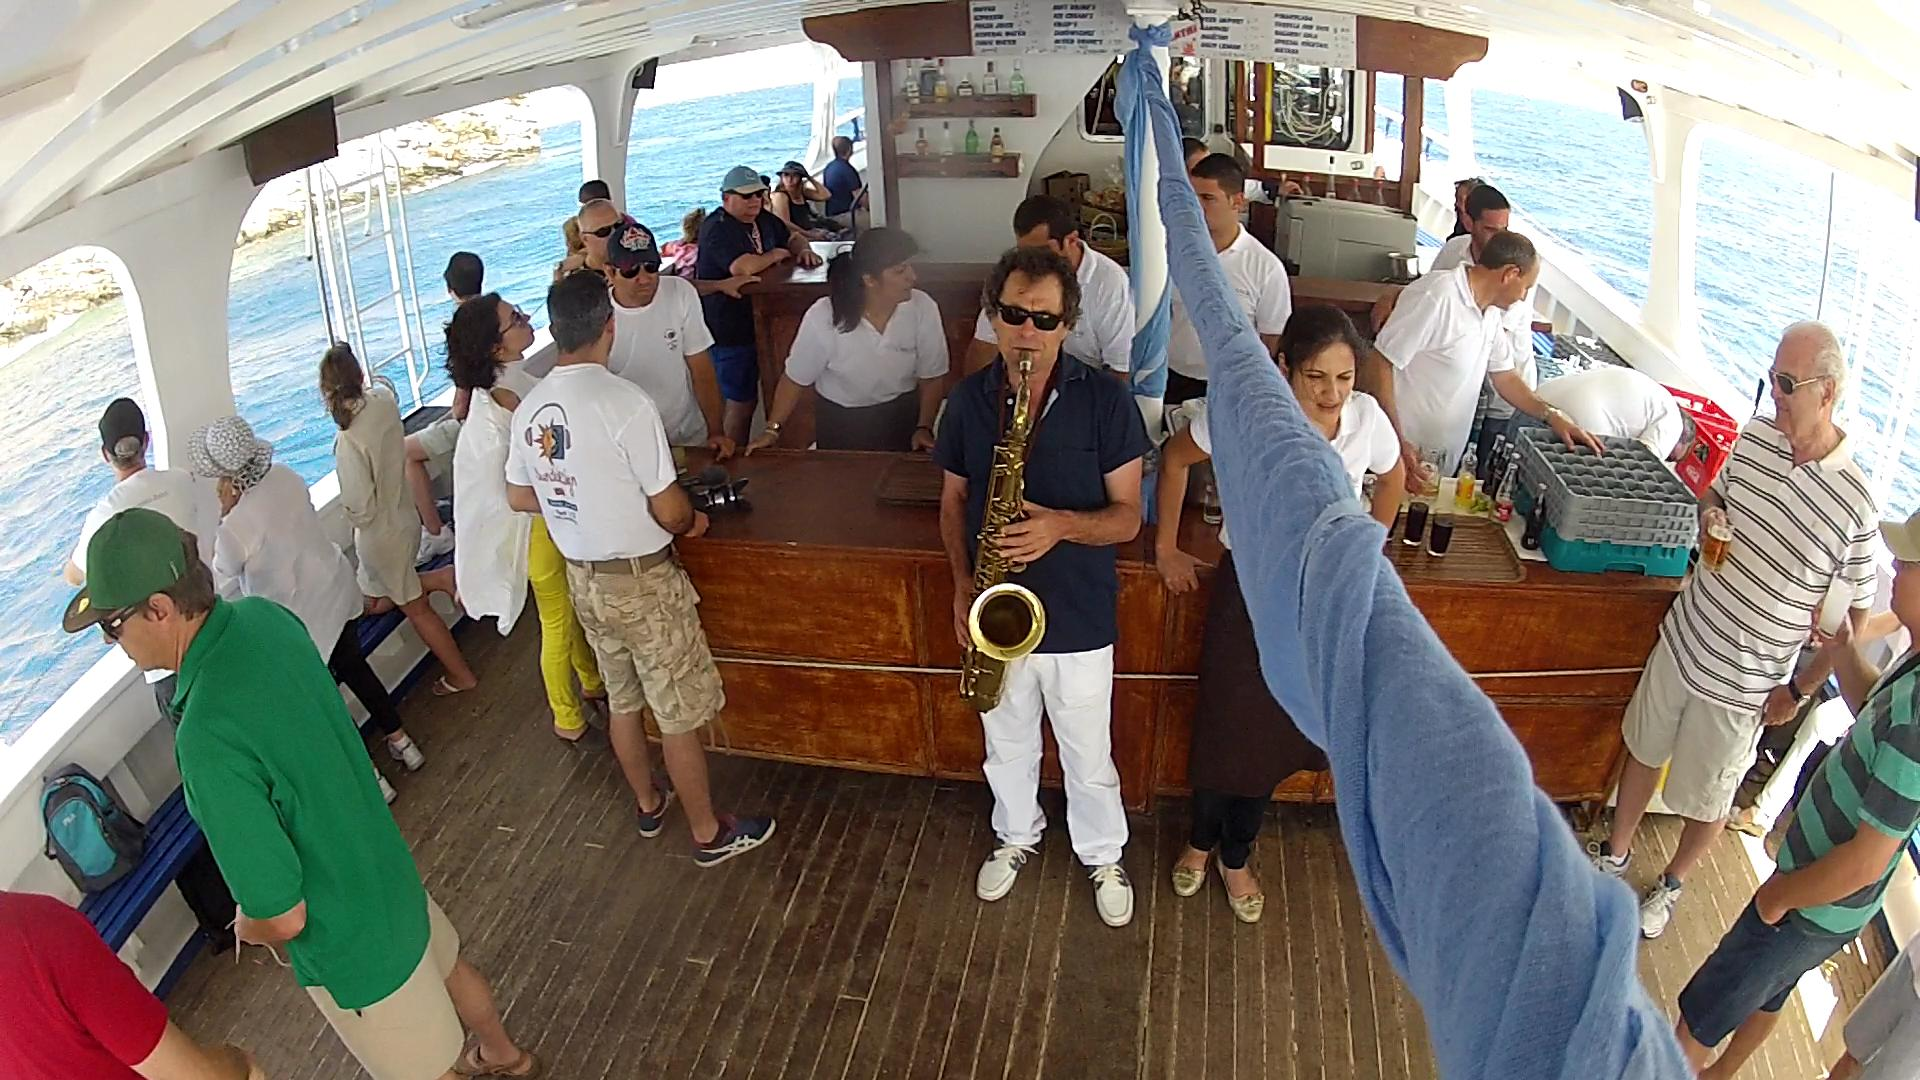 sounddesign  on boat events 2013